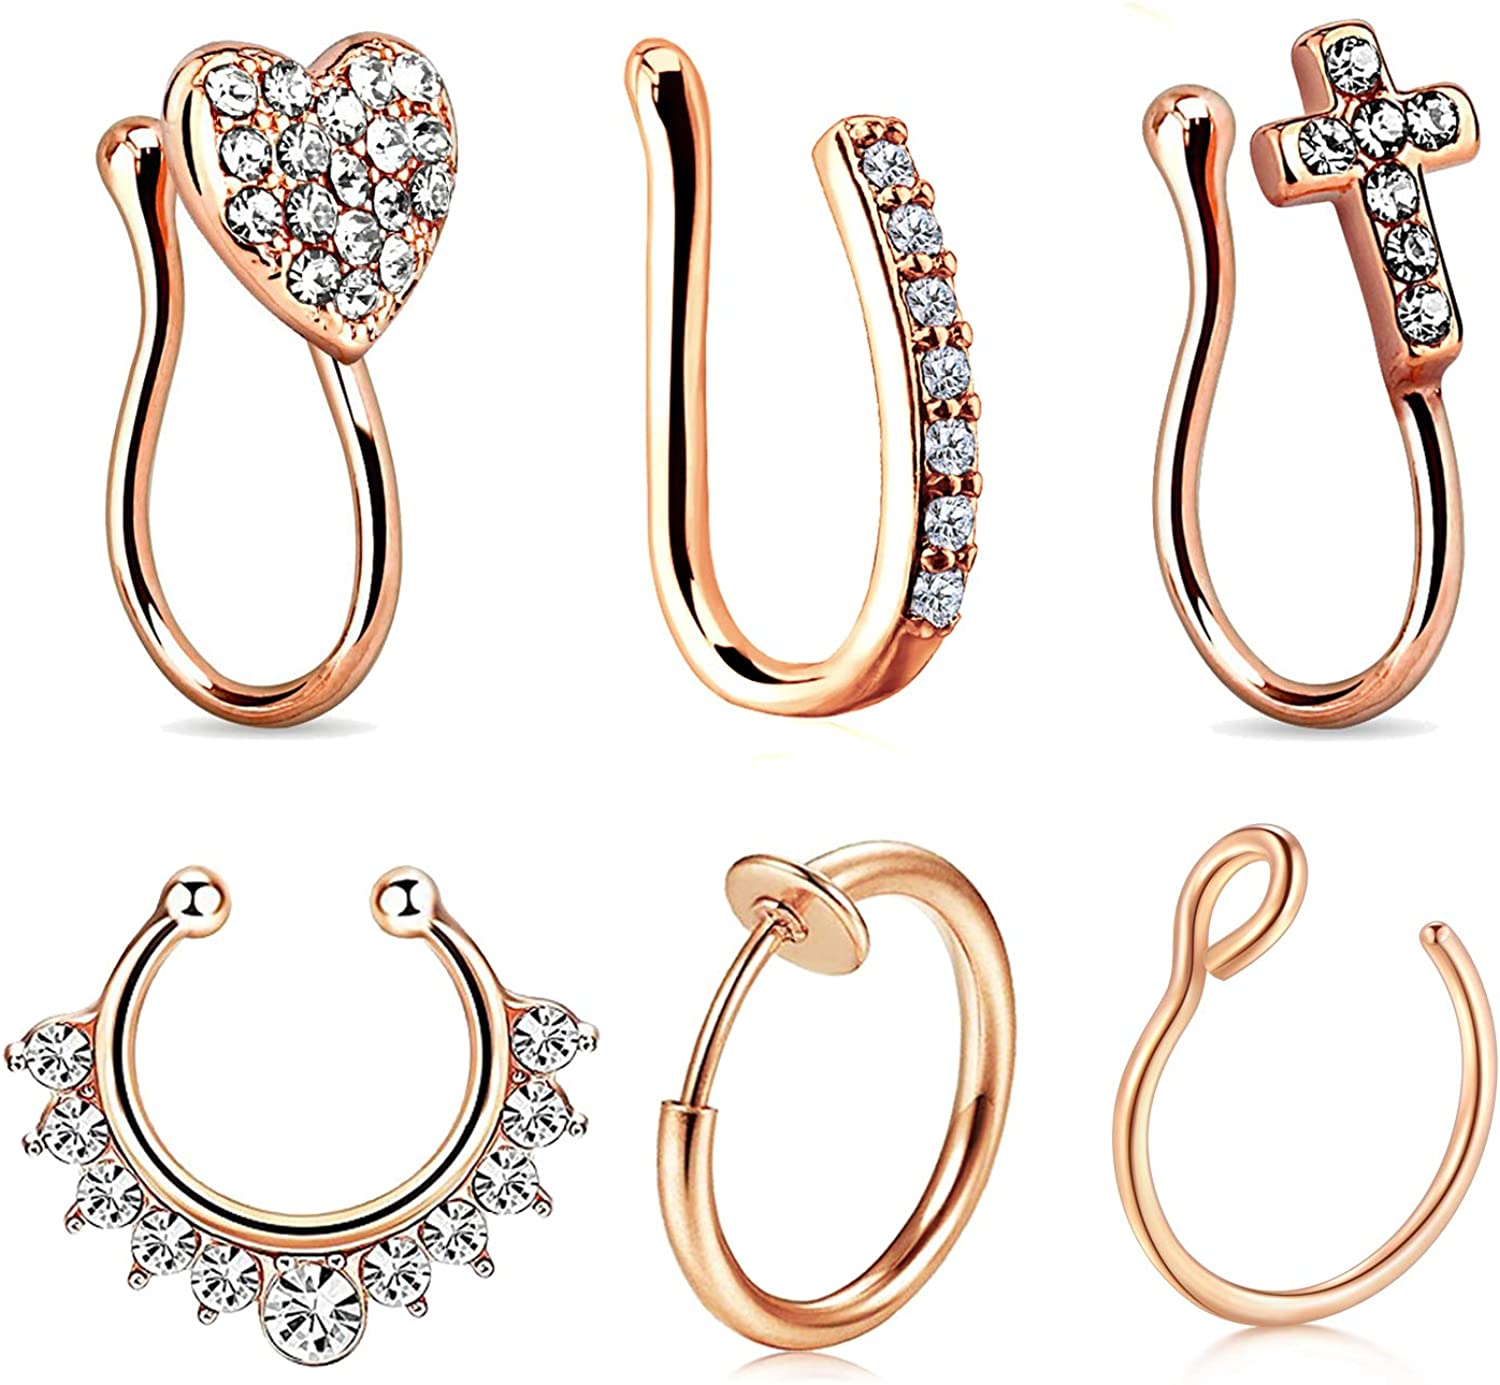 Jforyou 6pcs Nose Rings Fake 16g Stainless Steel Inlaid Cz Faux